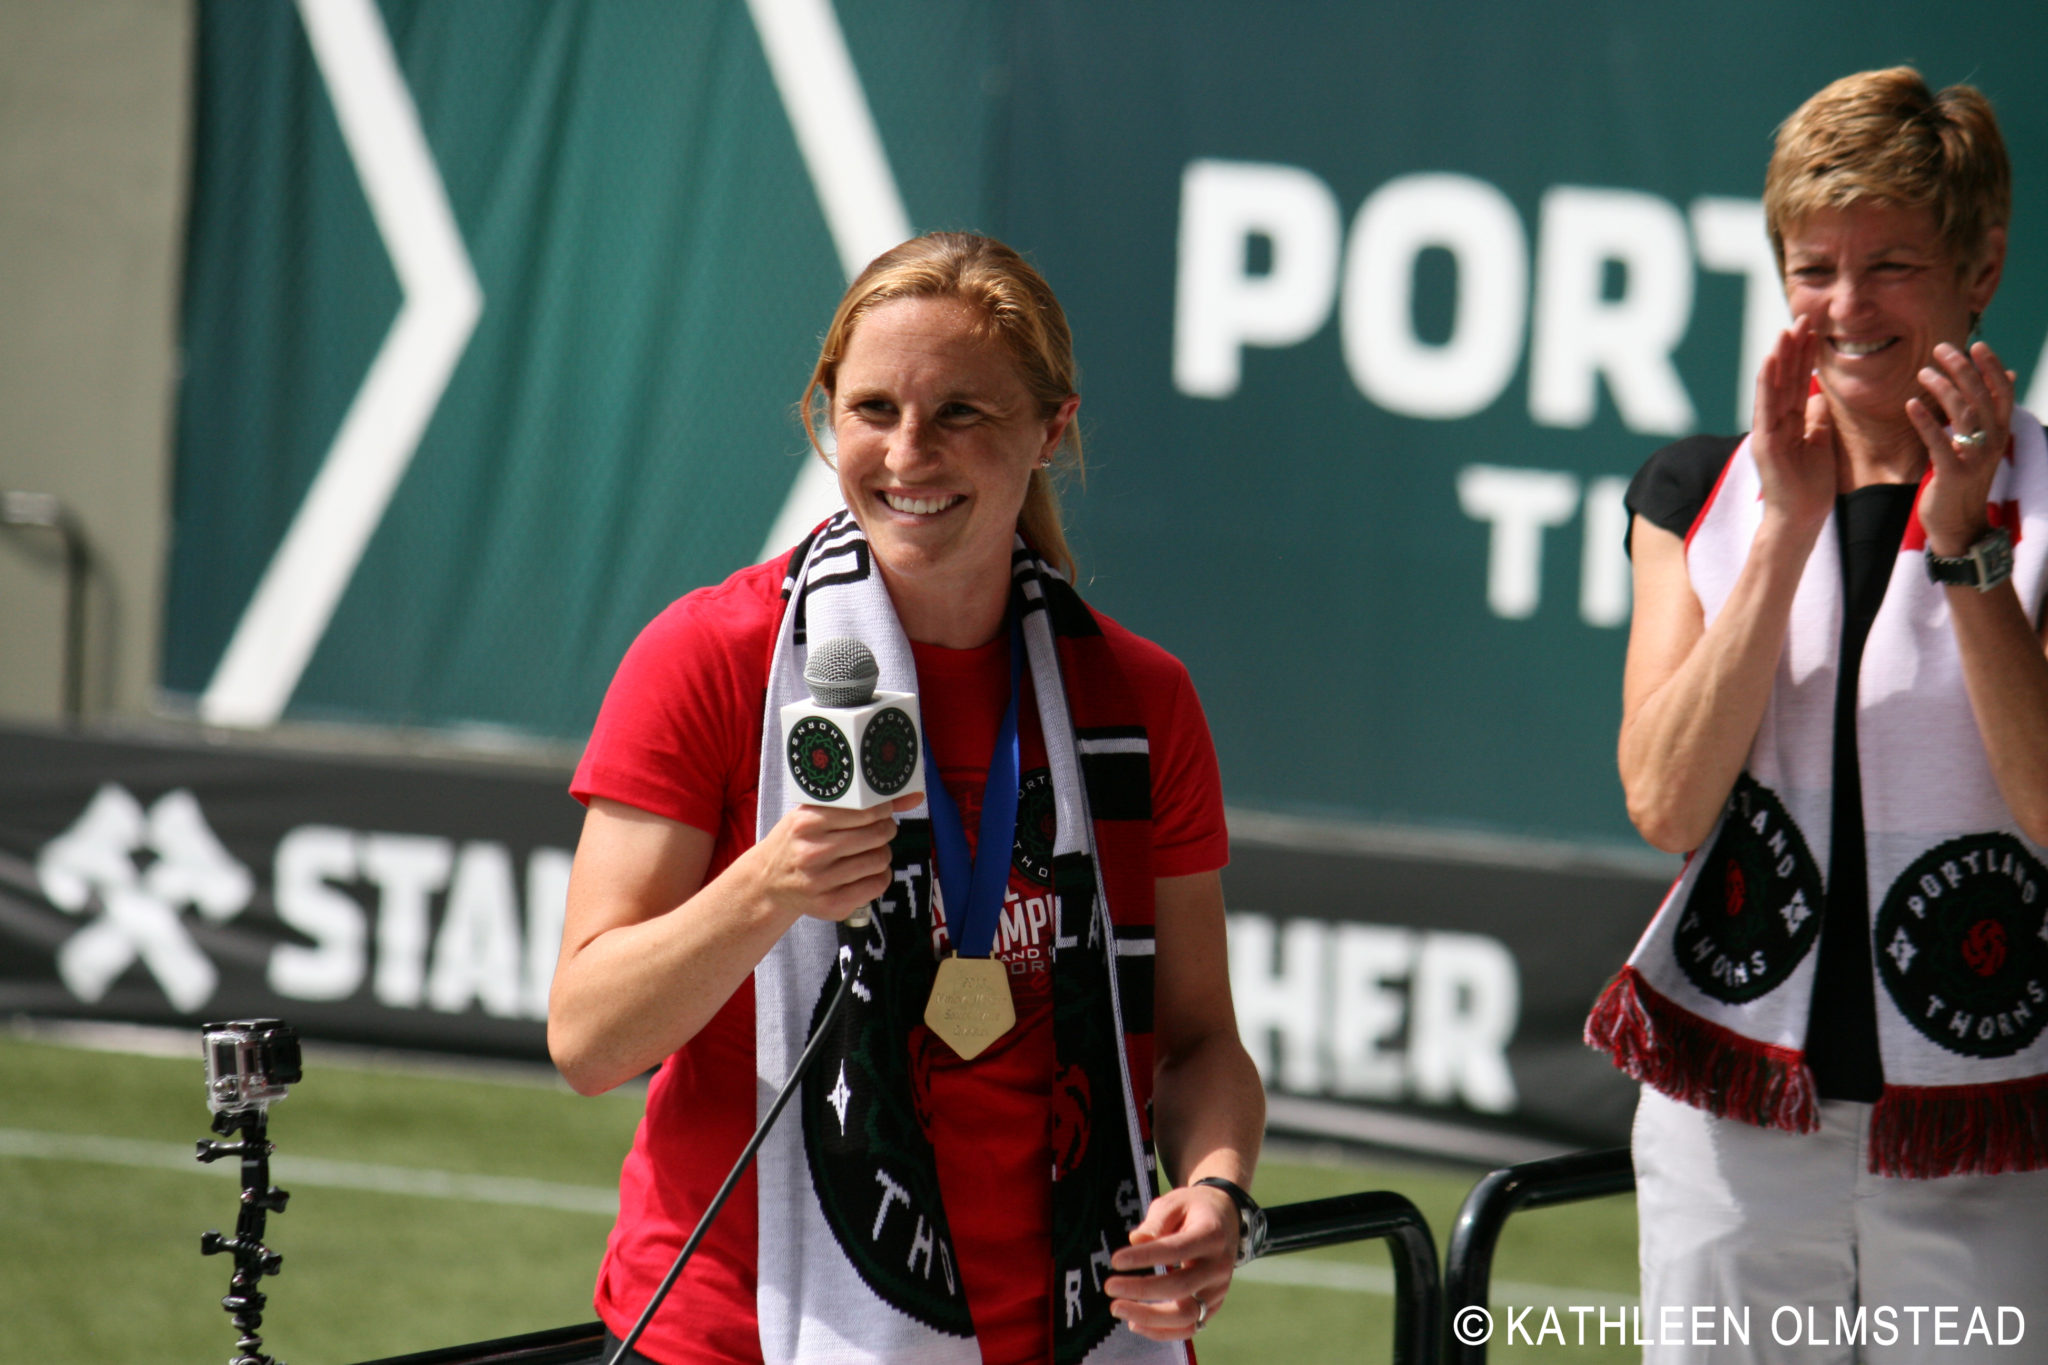 Rachel Buehler flew back from DC to celebrate the NWSL Championship win with fans. (Photo copyright Kathleen Olmstead for The Equalizer.)